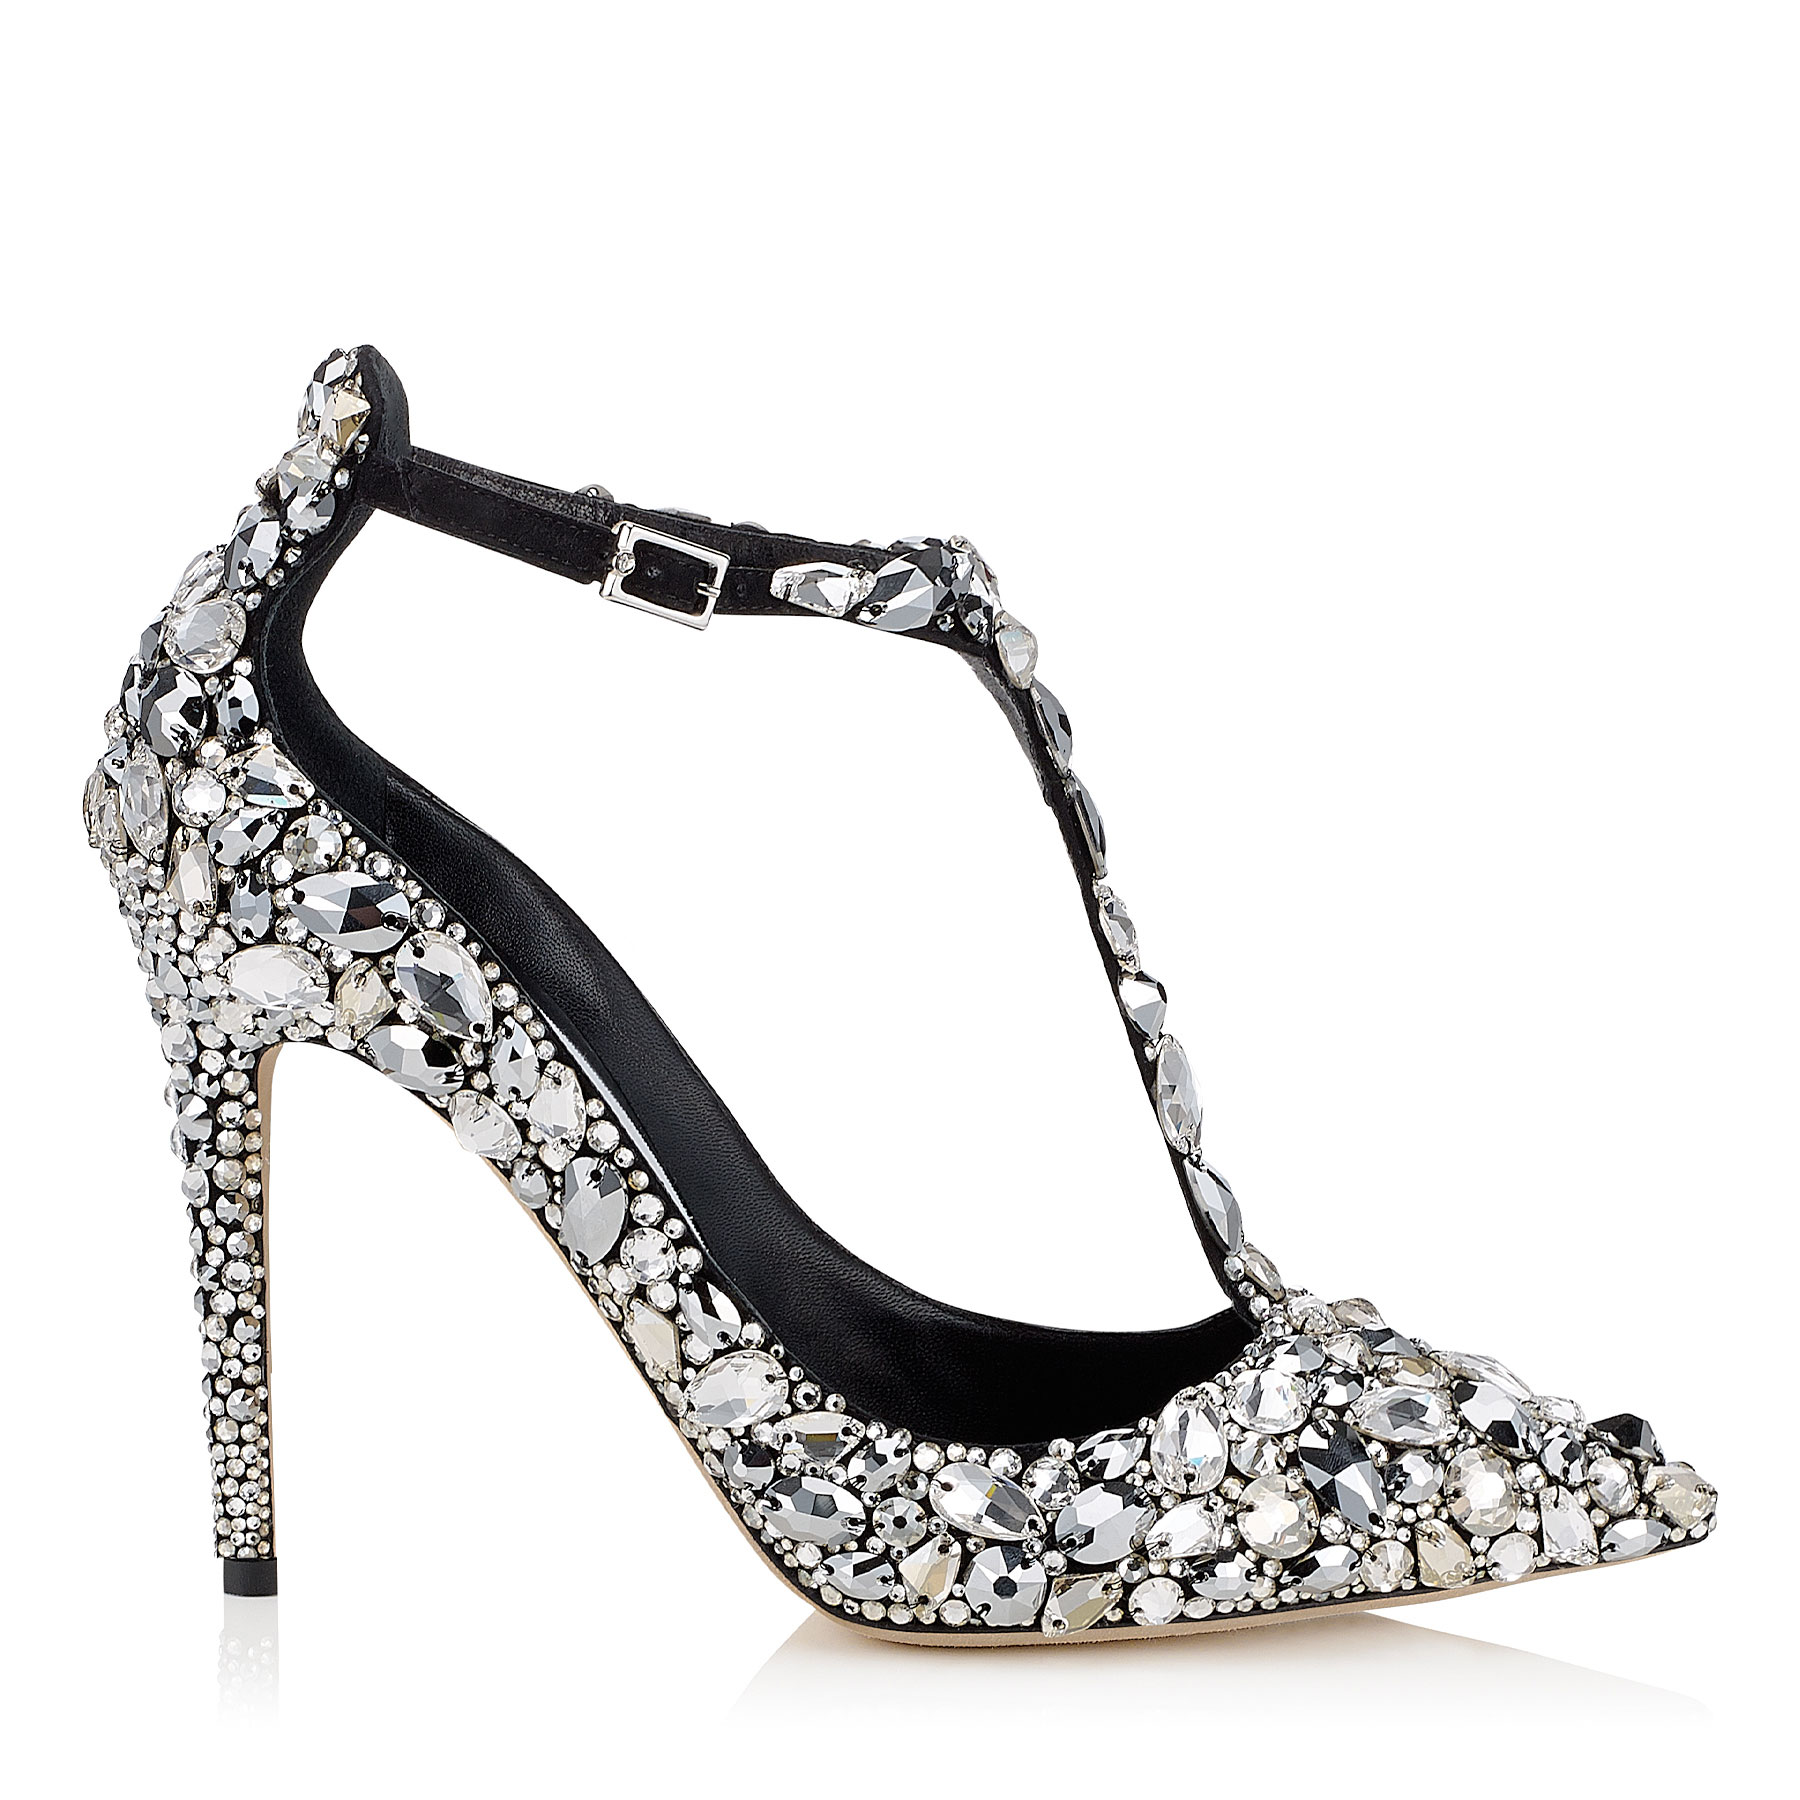 STORM 100 Black Suede, Crystal Covered Pointy Toe Pumps